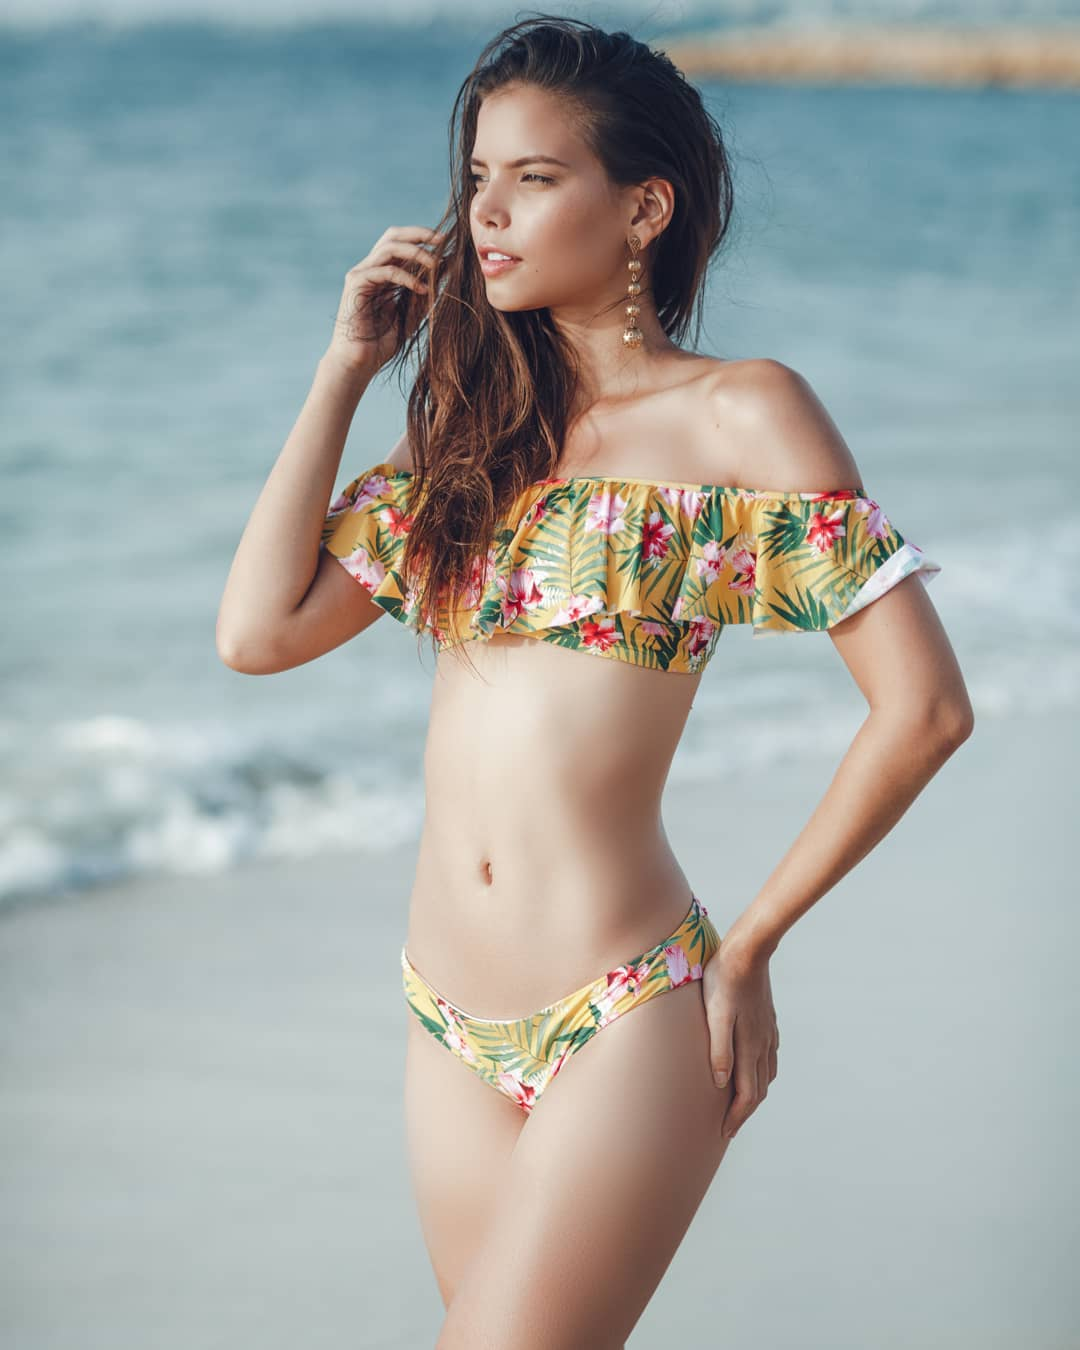 yaiselle tous, miss supranational colombia 2019. 65575110